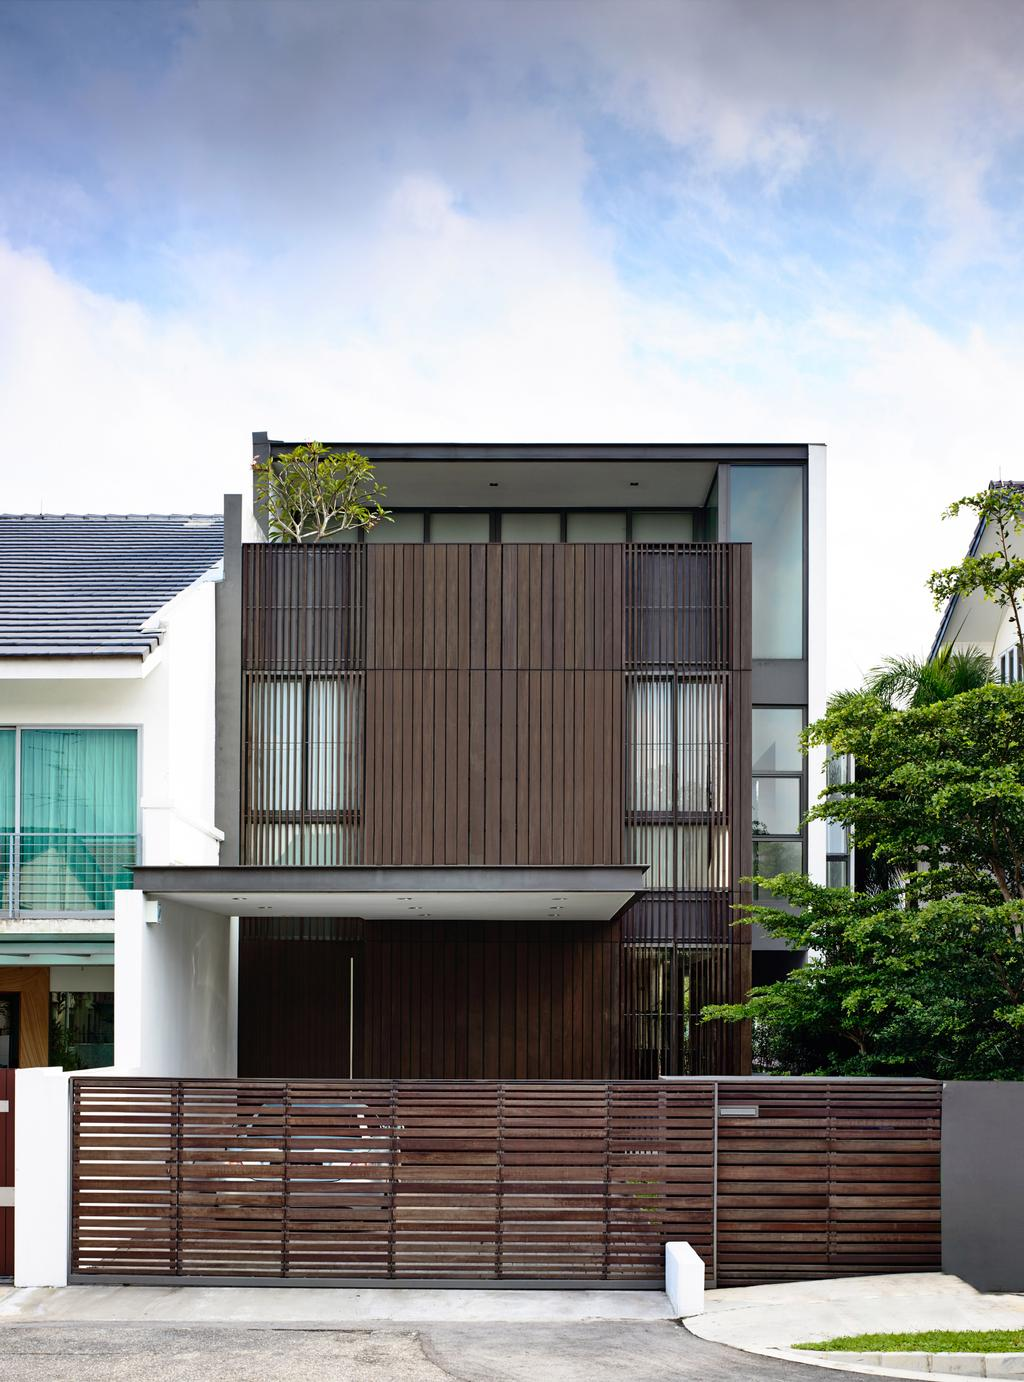 Contemporary, Landed, Eng Kong Gardens, Architect, HYLA Architects, Flora, Jar, Plant, Planter, Potted Plant, Pottery, Vase, Building, House, Housing, Villa, Conifer, Tree, Yew, Balcony